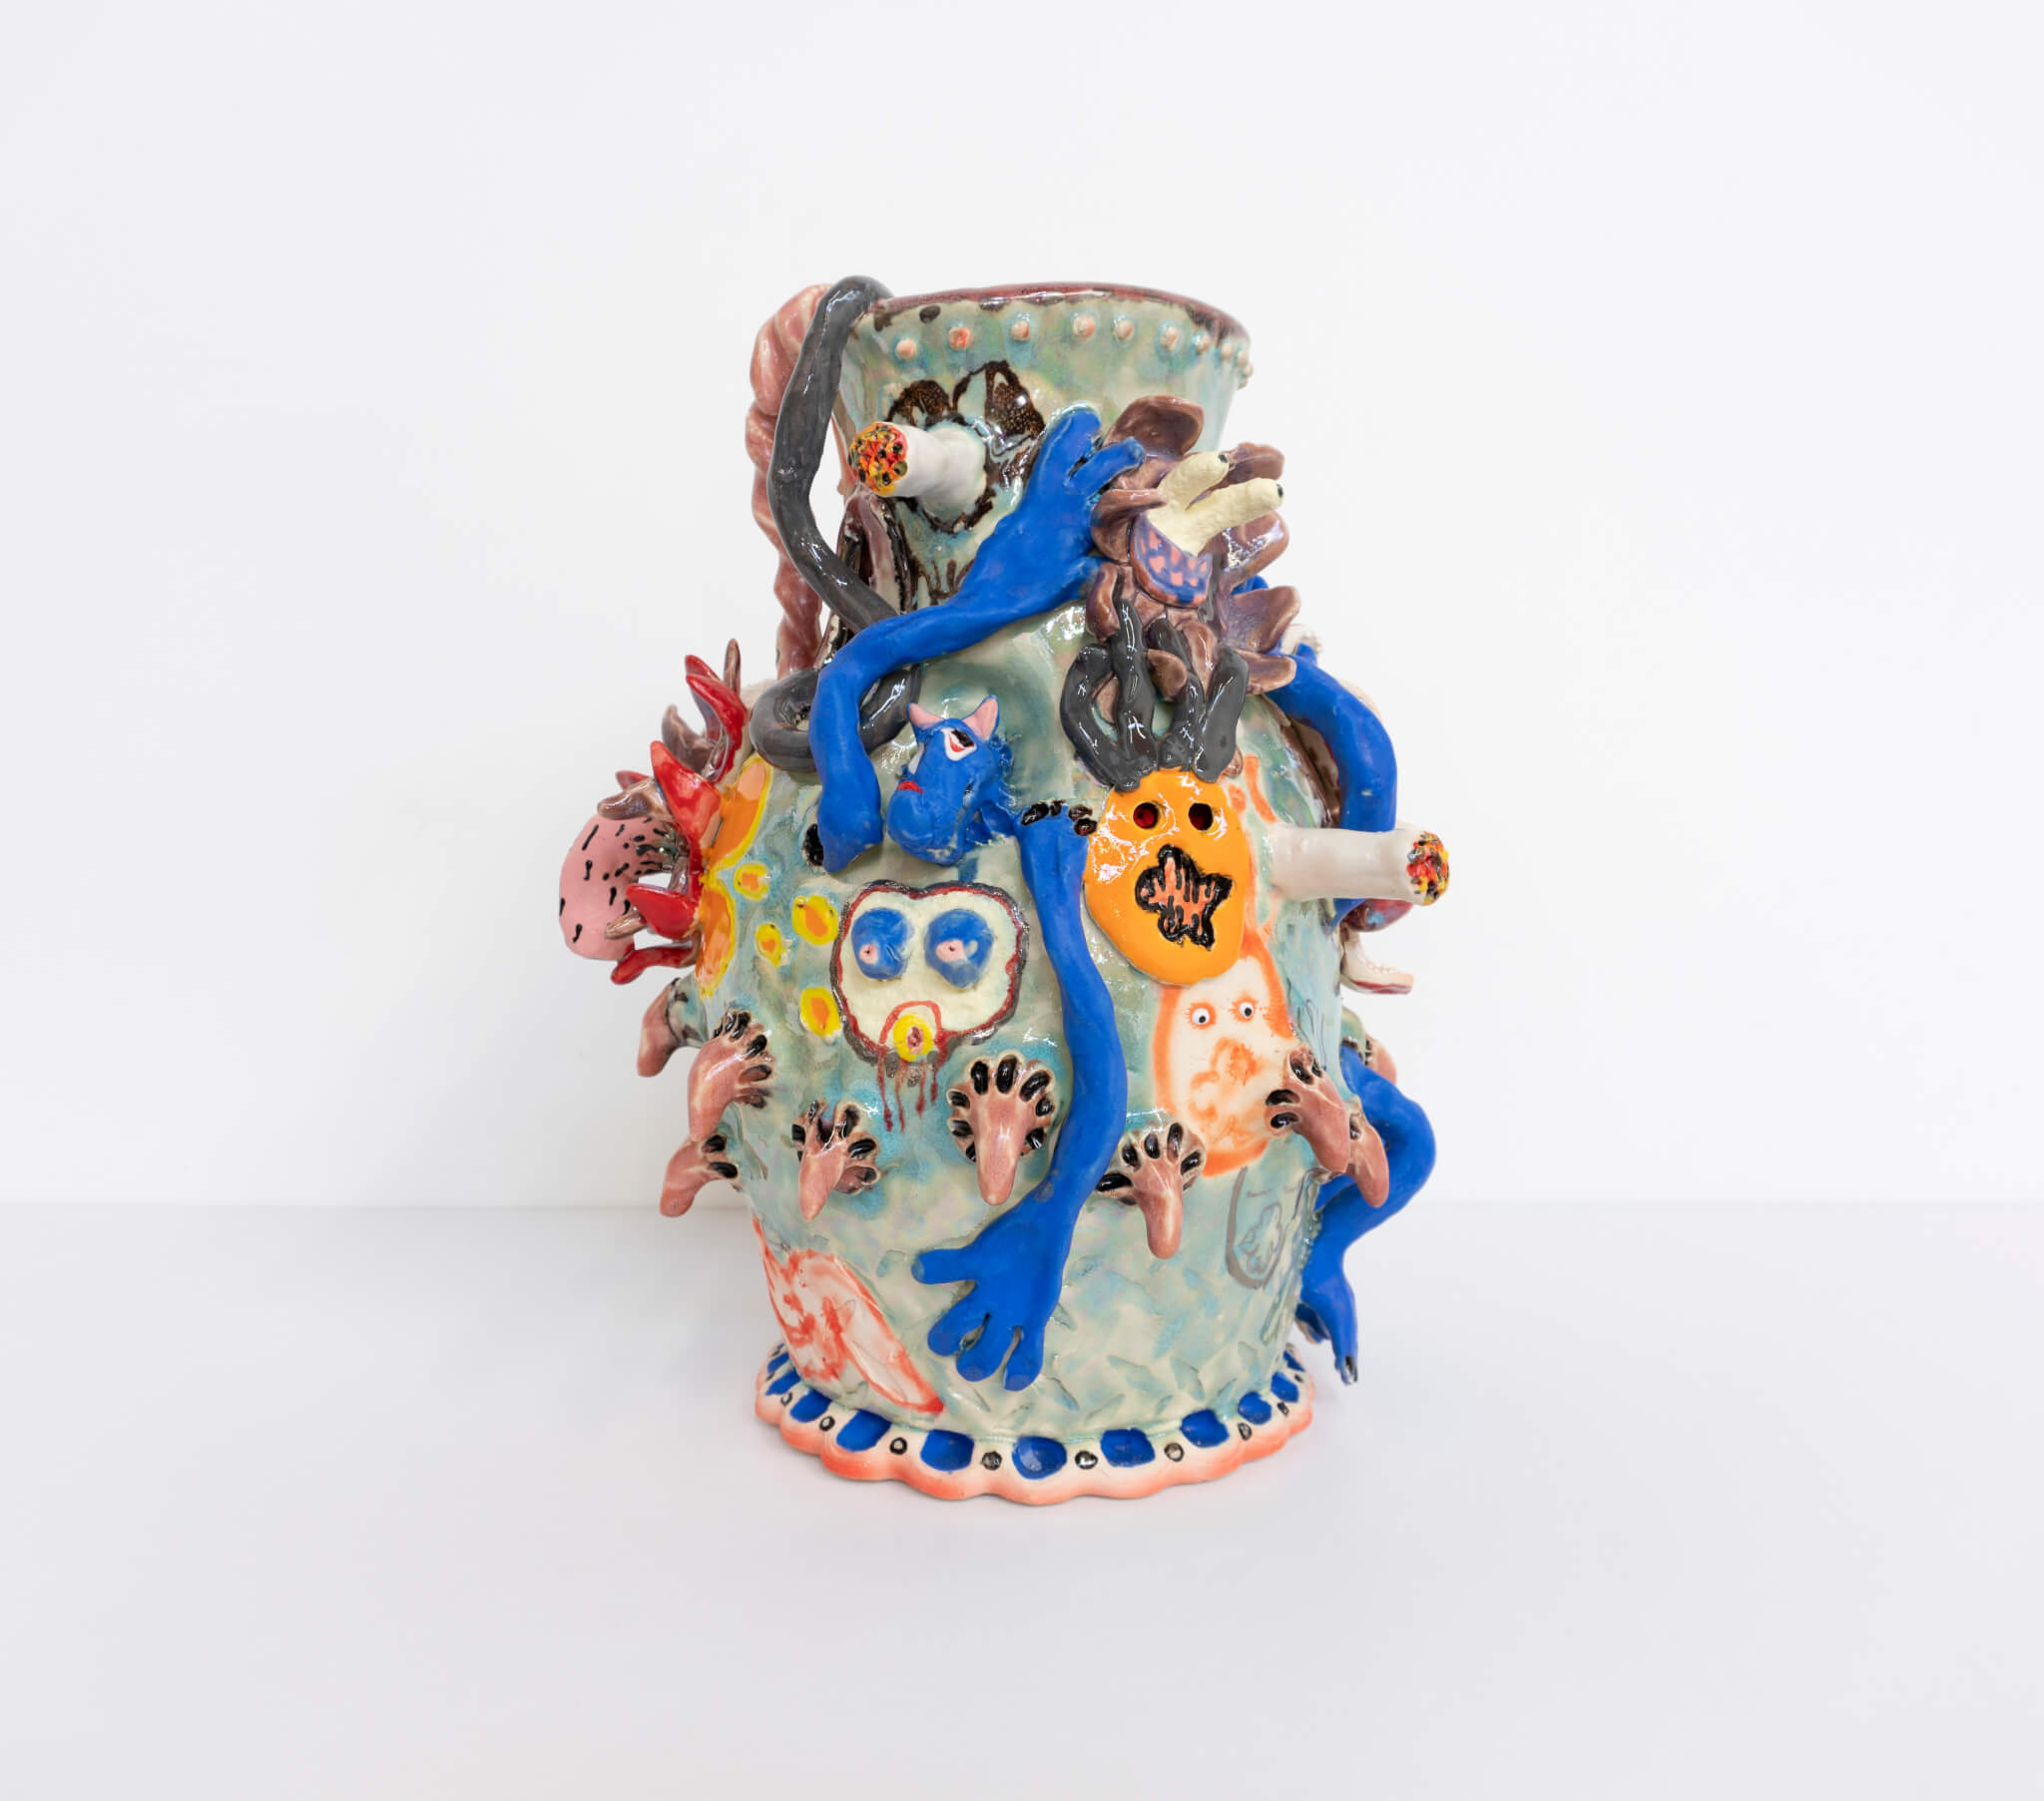 Farrag, Ice Blue Coyote Jug, 2019 (SF 19.026) D